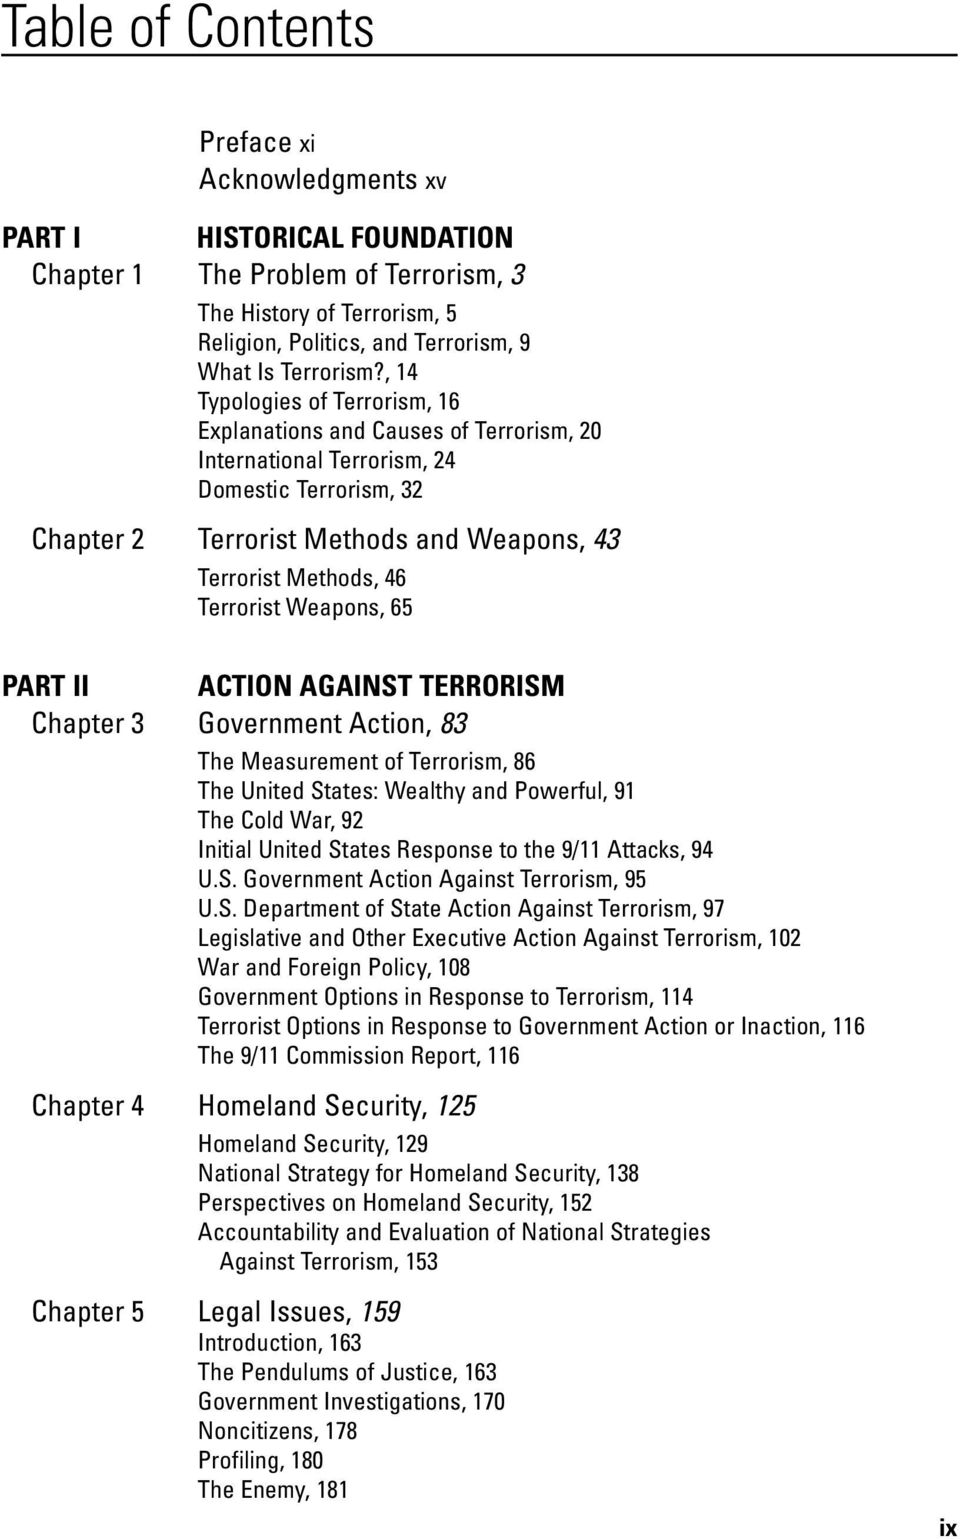 Terrorist Weapons, 65 PART II ACTION AGAINST TERRORISM Chapter 3 Government Action, 83 The Measurement of Terrorism, 86 The United States: Wealthy and Powerful, 91 The Cold War, 92 Initial United